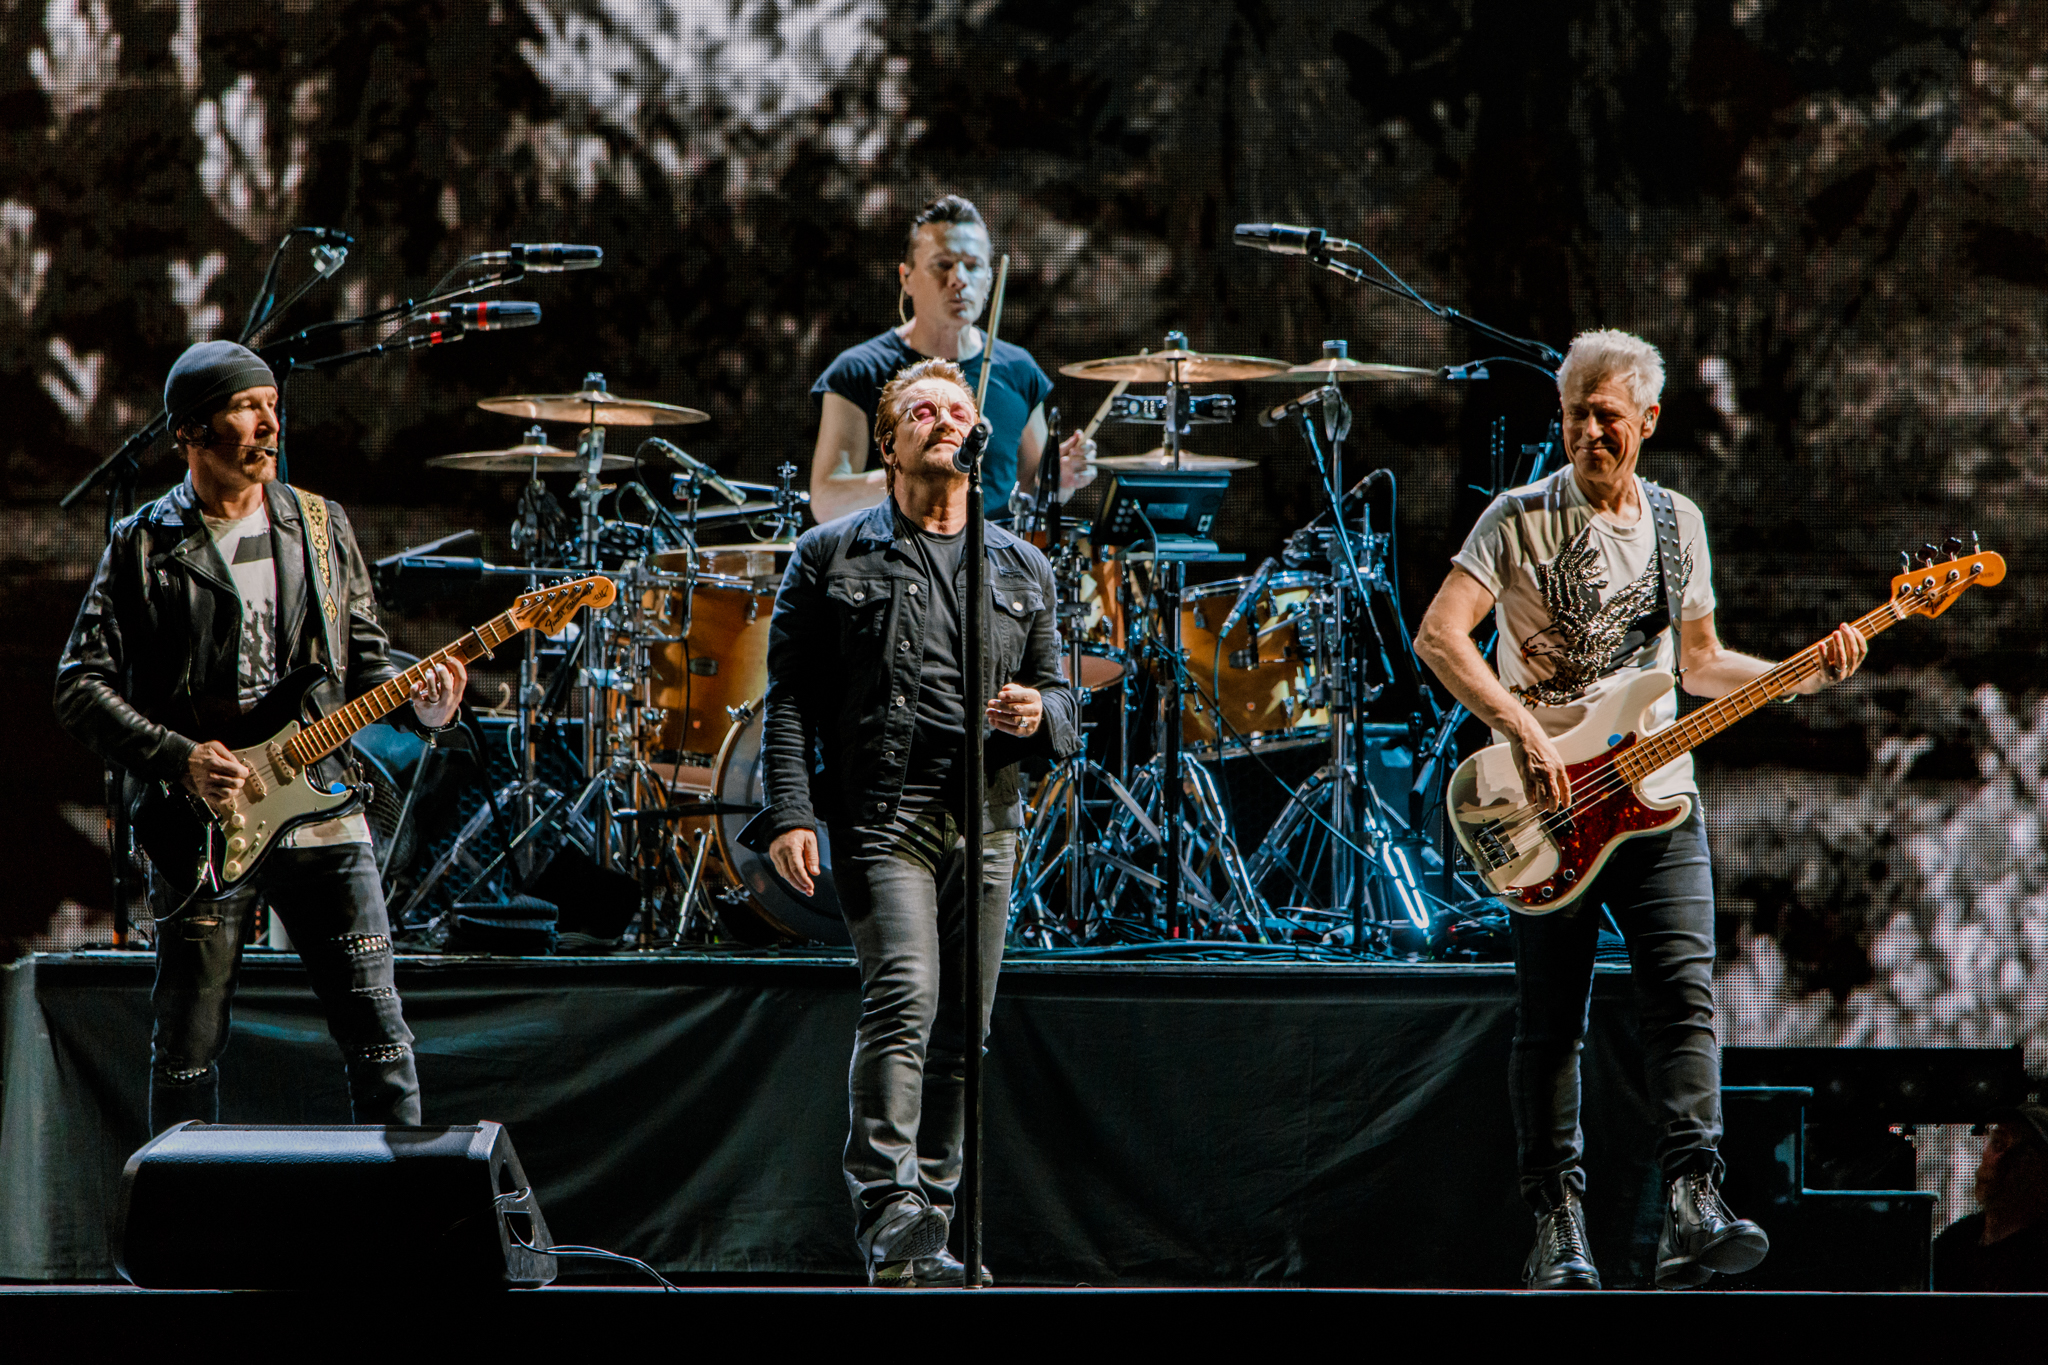 U2 performing at FedExField in Landover, MD on June 20th, 2017 (photo by Matt Condon /  @arcane93 )